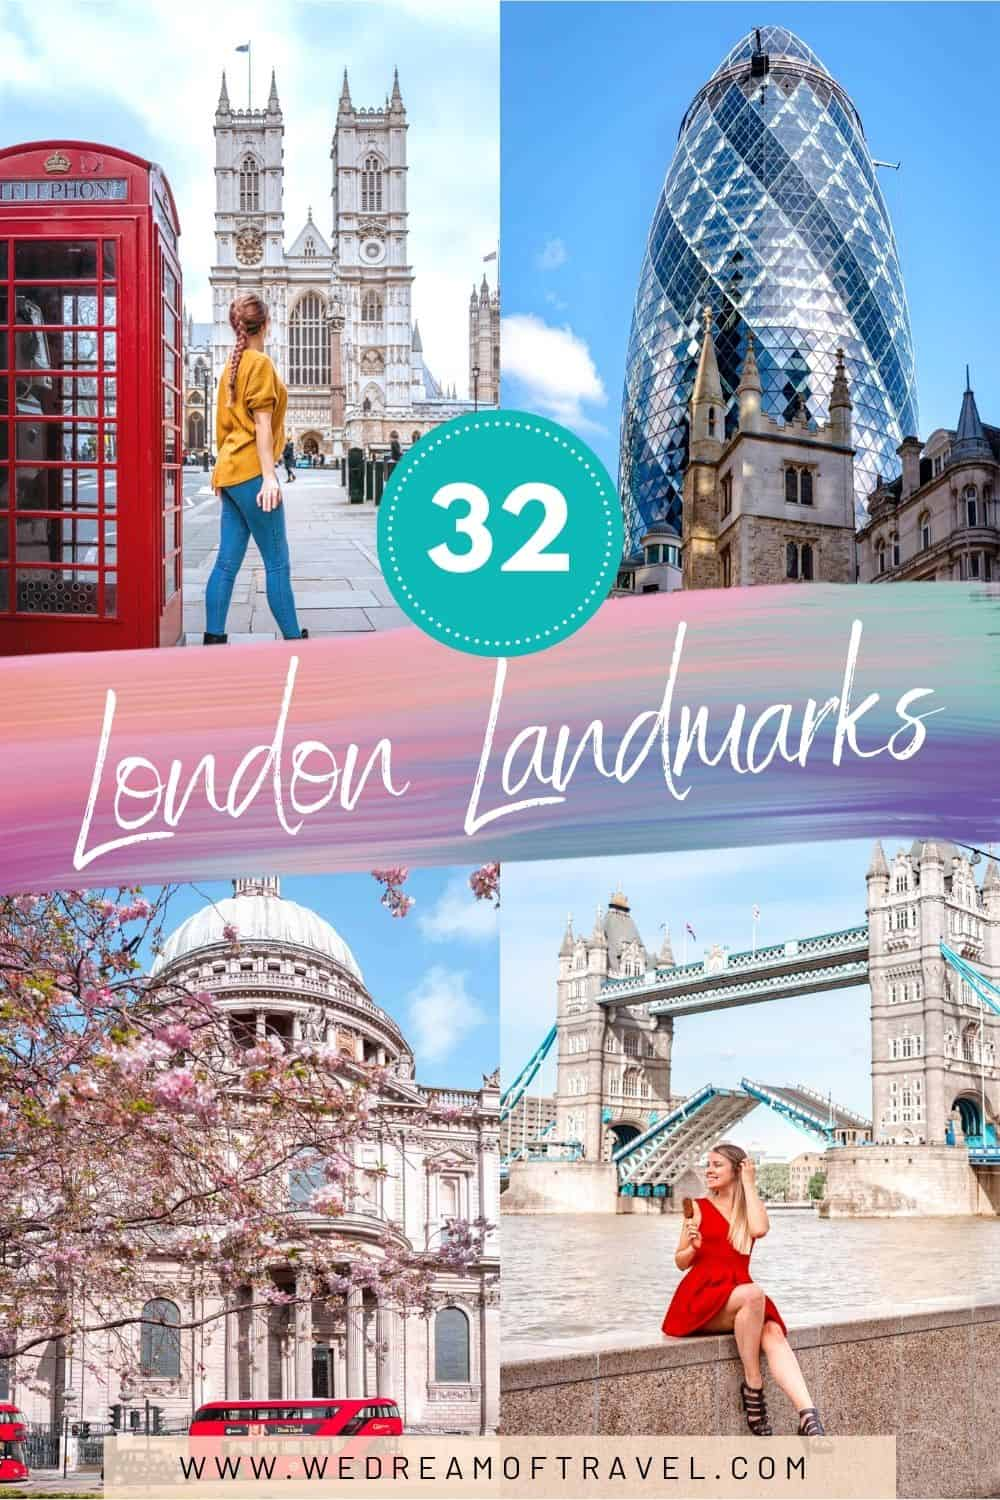 No visit to the capital city is complete without visiting some of the most famous landmarks in London. Discover 32 iconic sites in London you need to see! London Landmarks | Landmarks in London | Landmarks of London